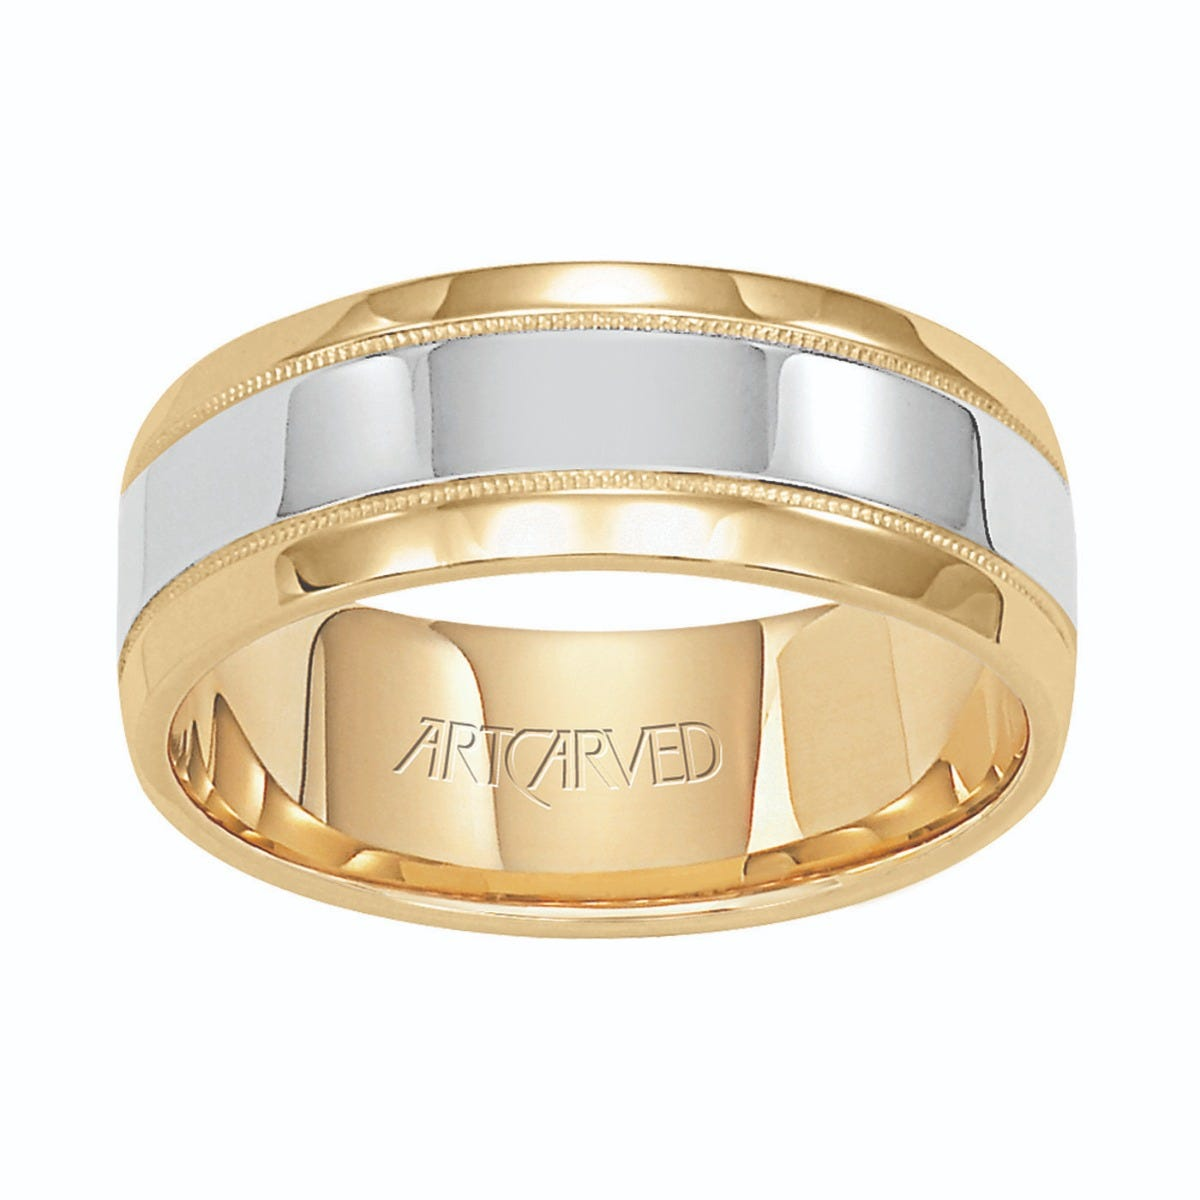 ArtCarved Men's 14K Yellow & White Gold Polished Milgrain Wedding Band